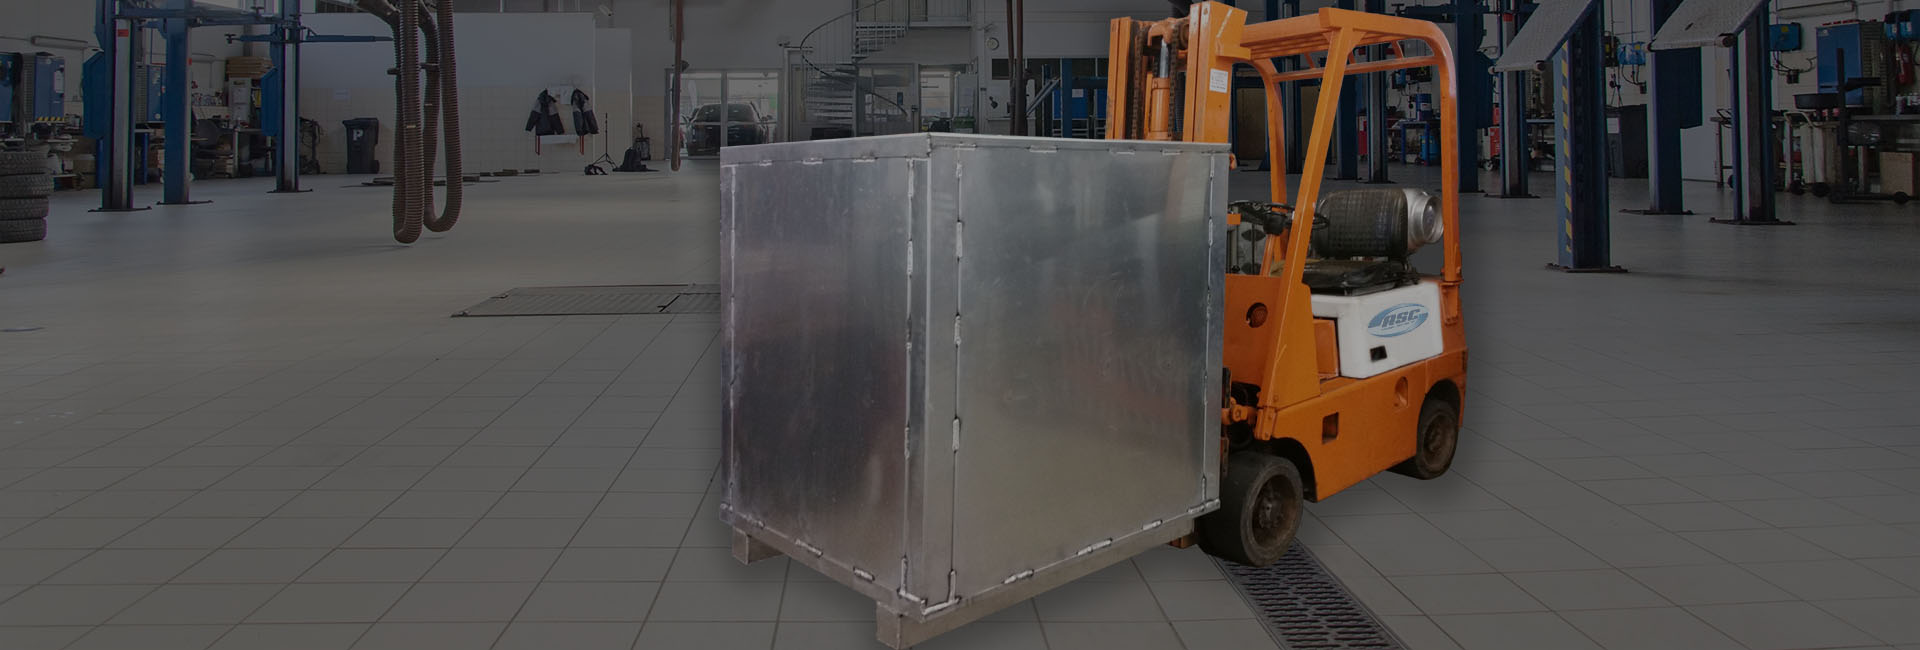 Forklift Carrying Electrostatic Precipitators